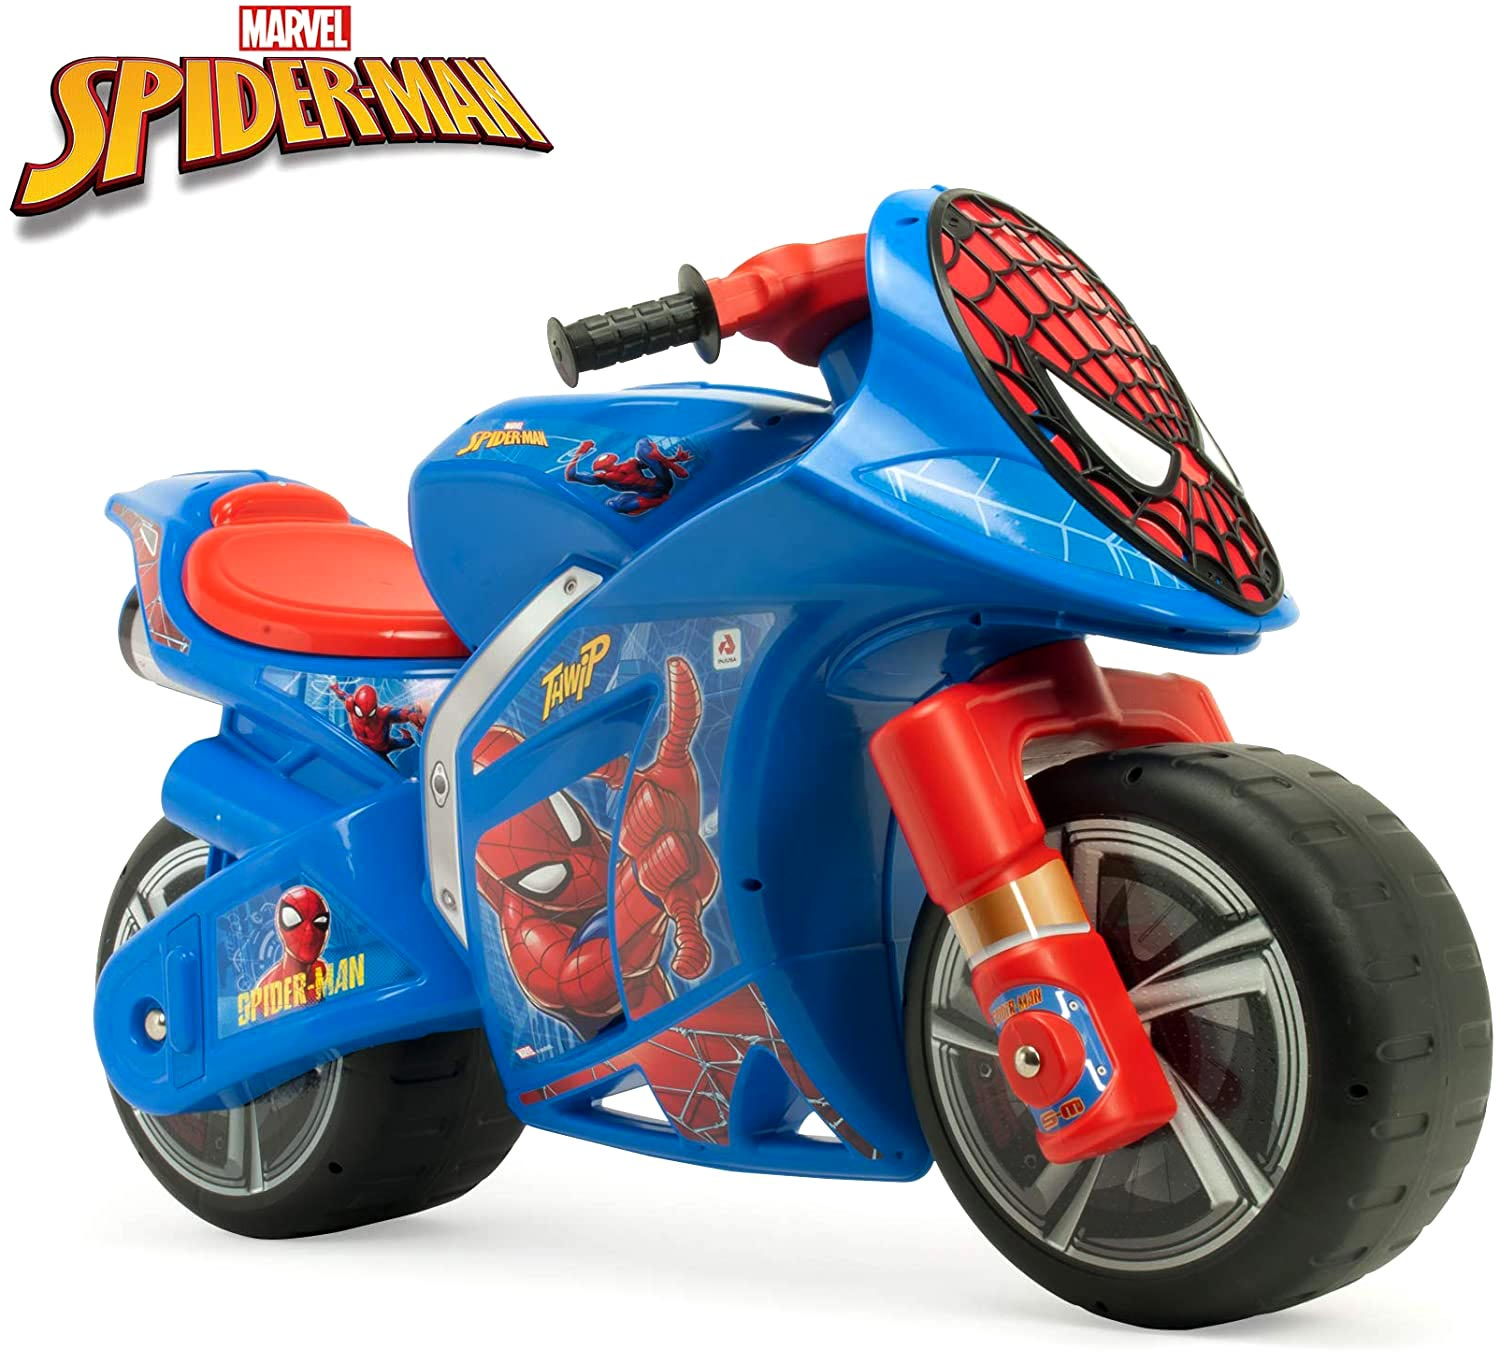 moto correpasillos spiderman XL